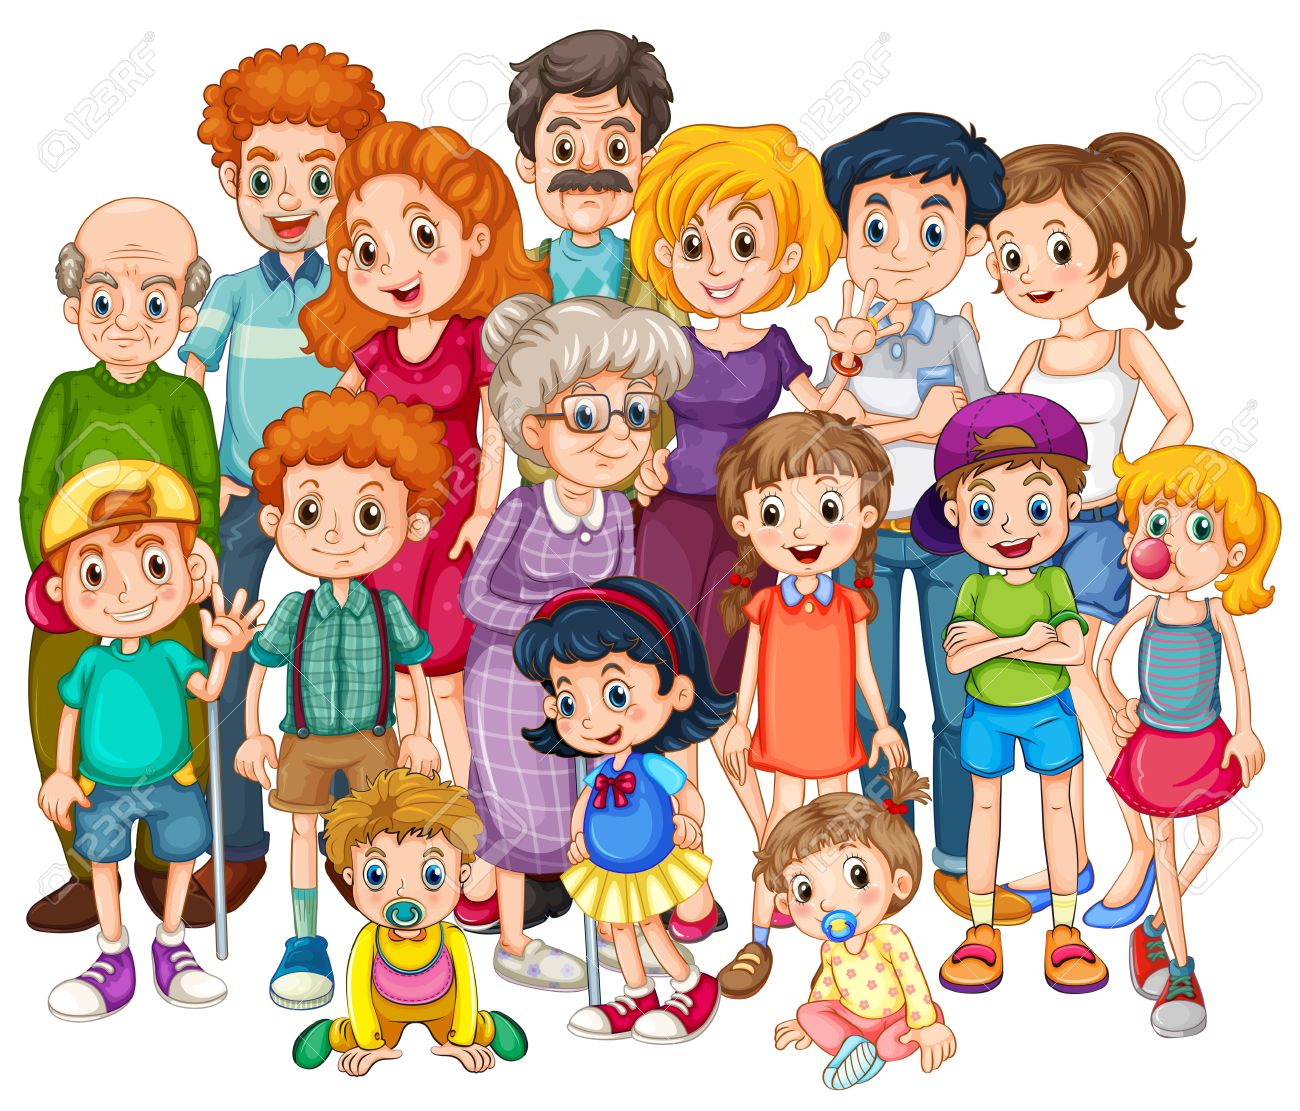 Image result for family clipart